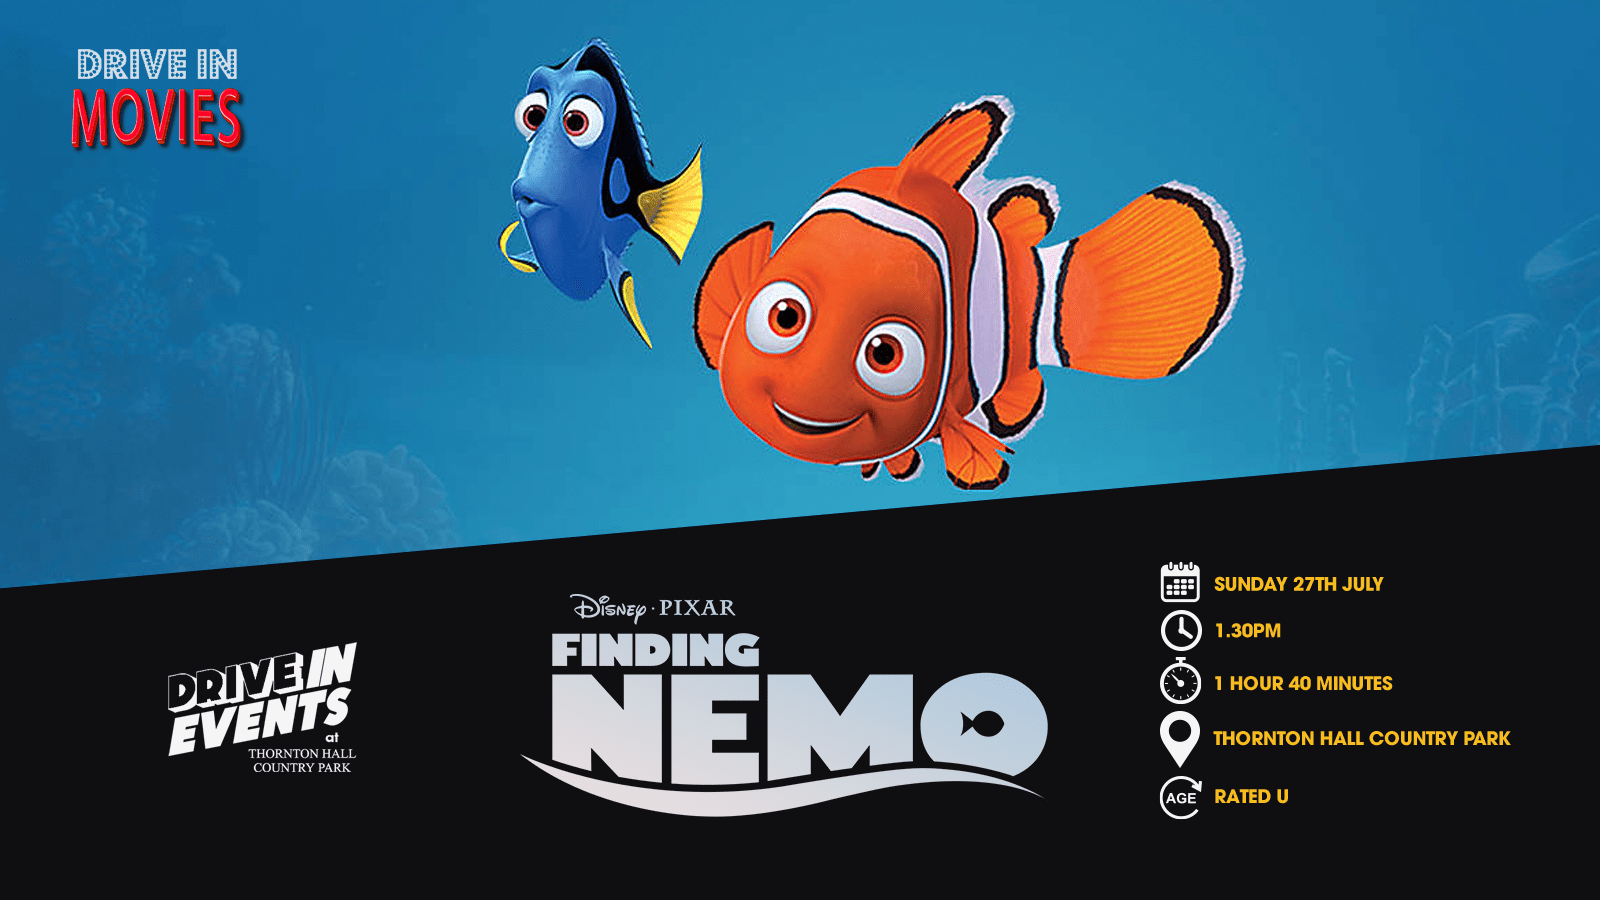 Finding Nemo (Drive In Movie)